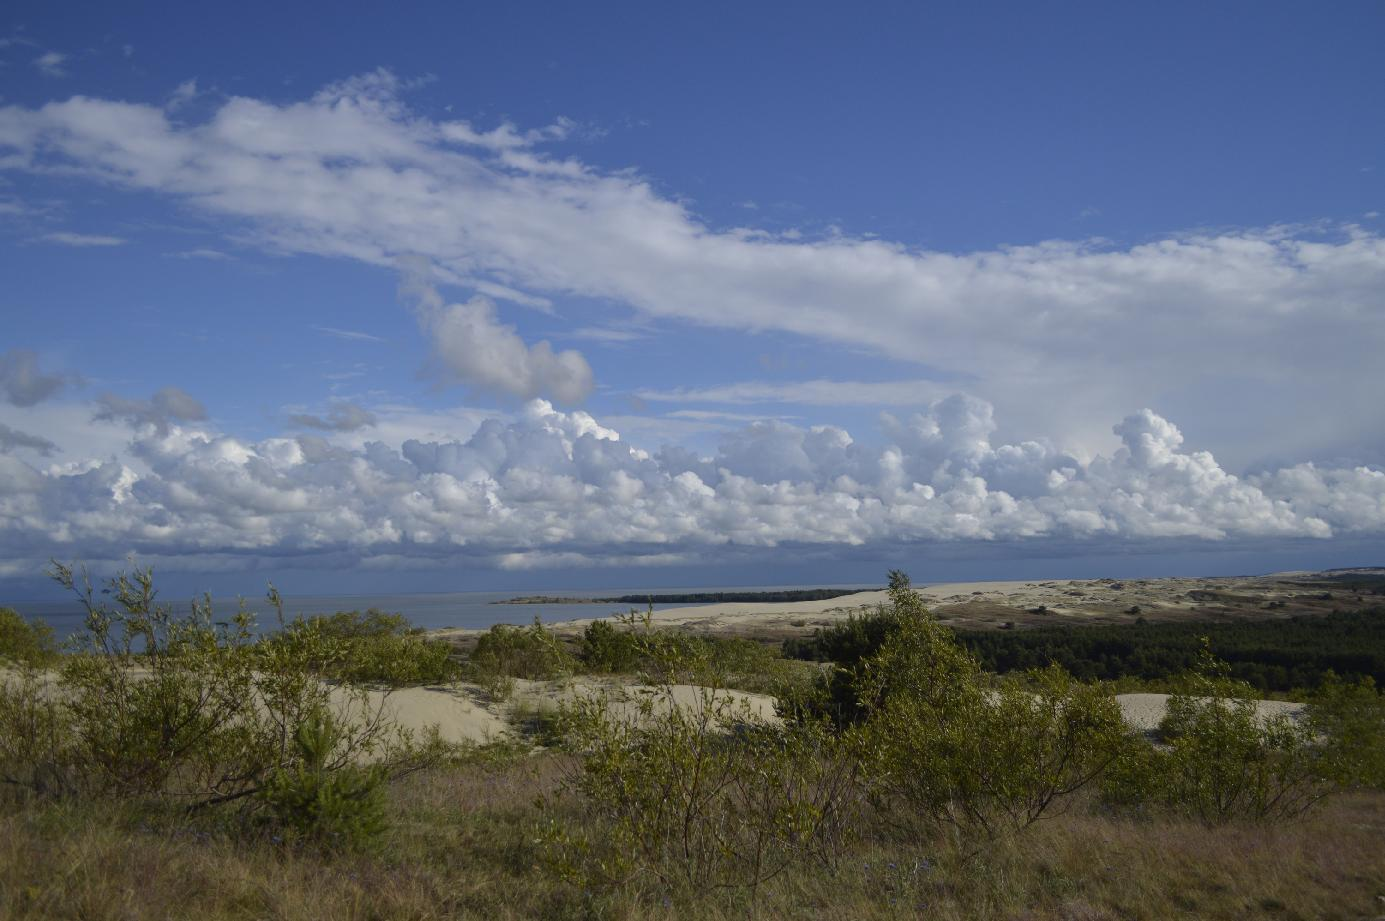 Lithuania's Curonian Spit: Serene strand between the waters